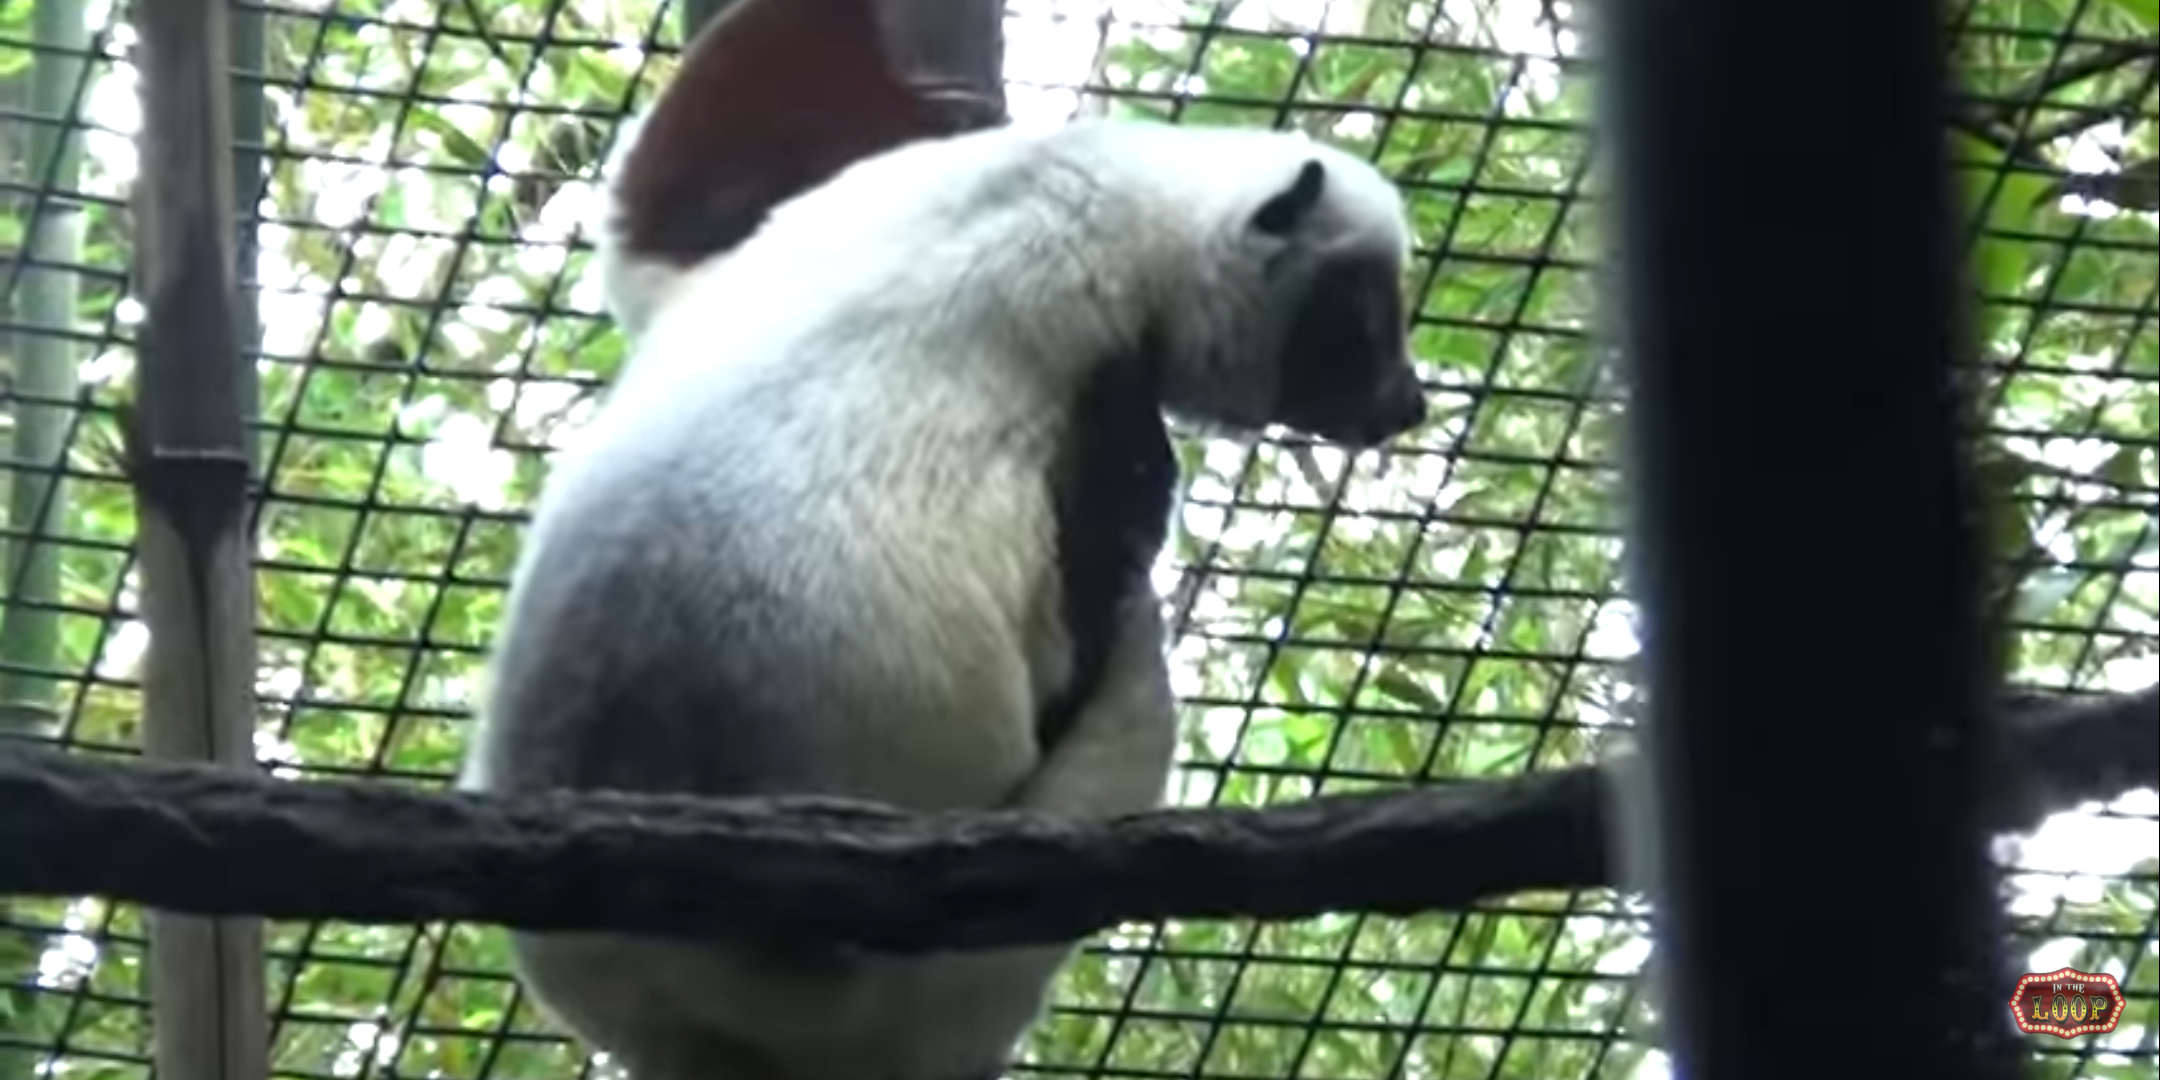 Abigail the Coquerel's Sifaka